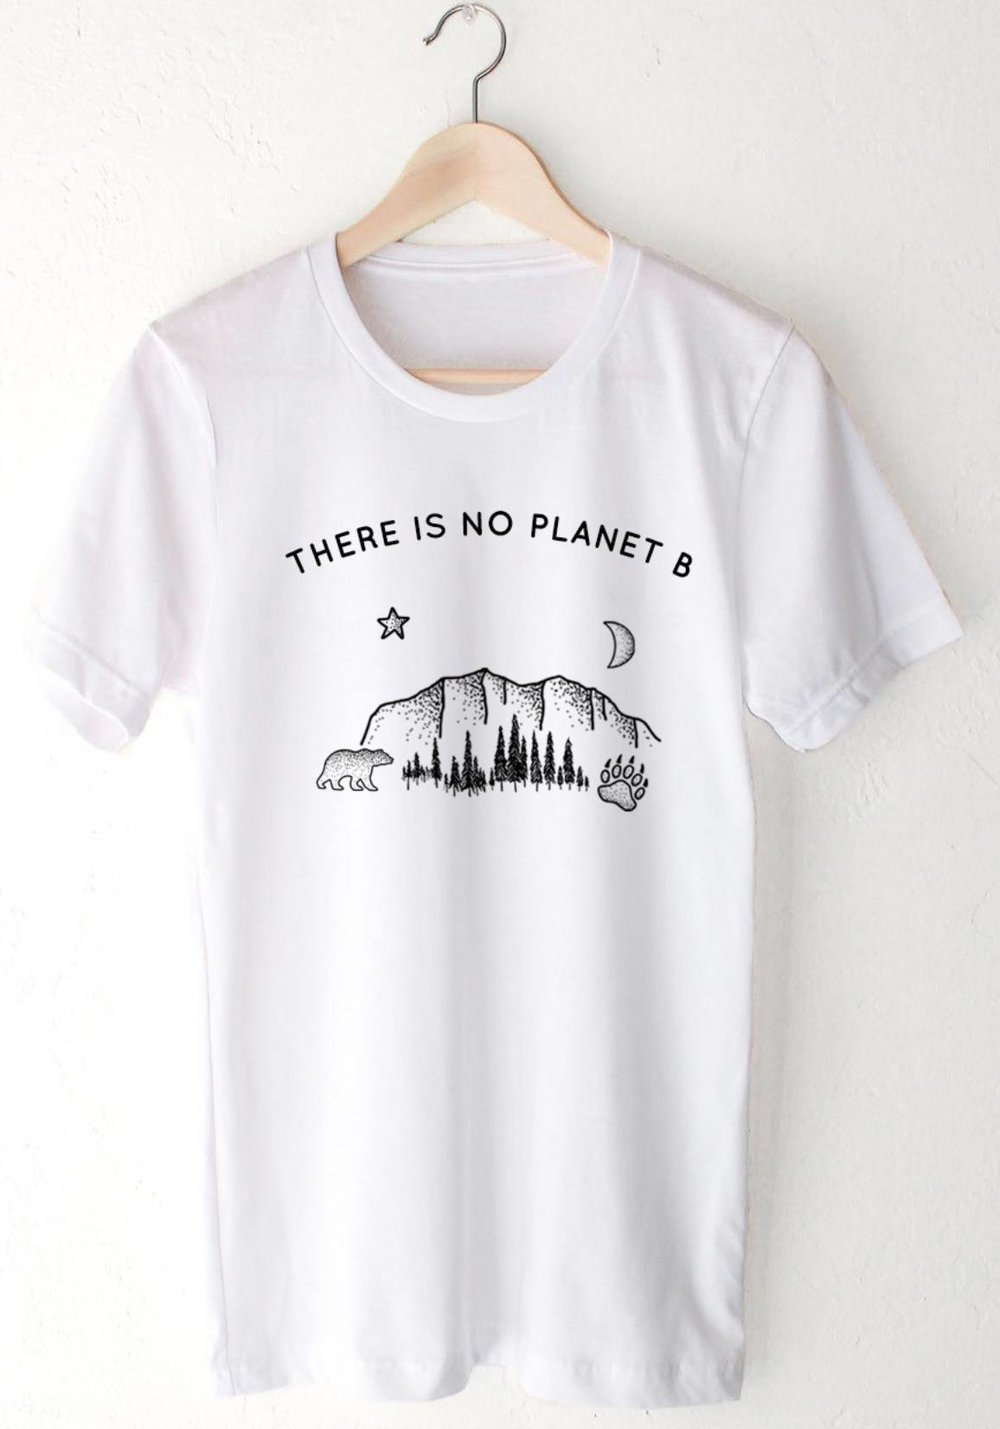 t-shirts-organic-there-is-no-planet-b-tee.jpg